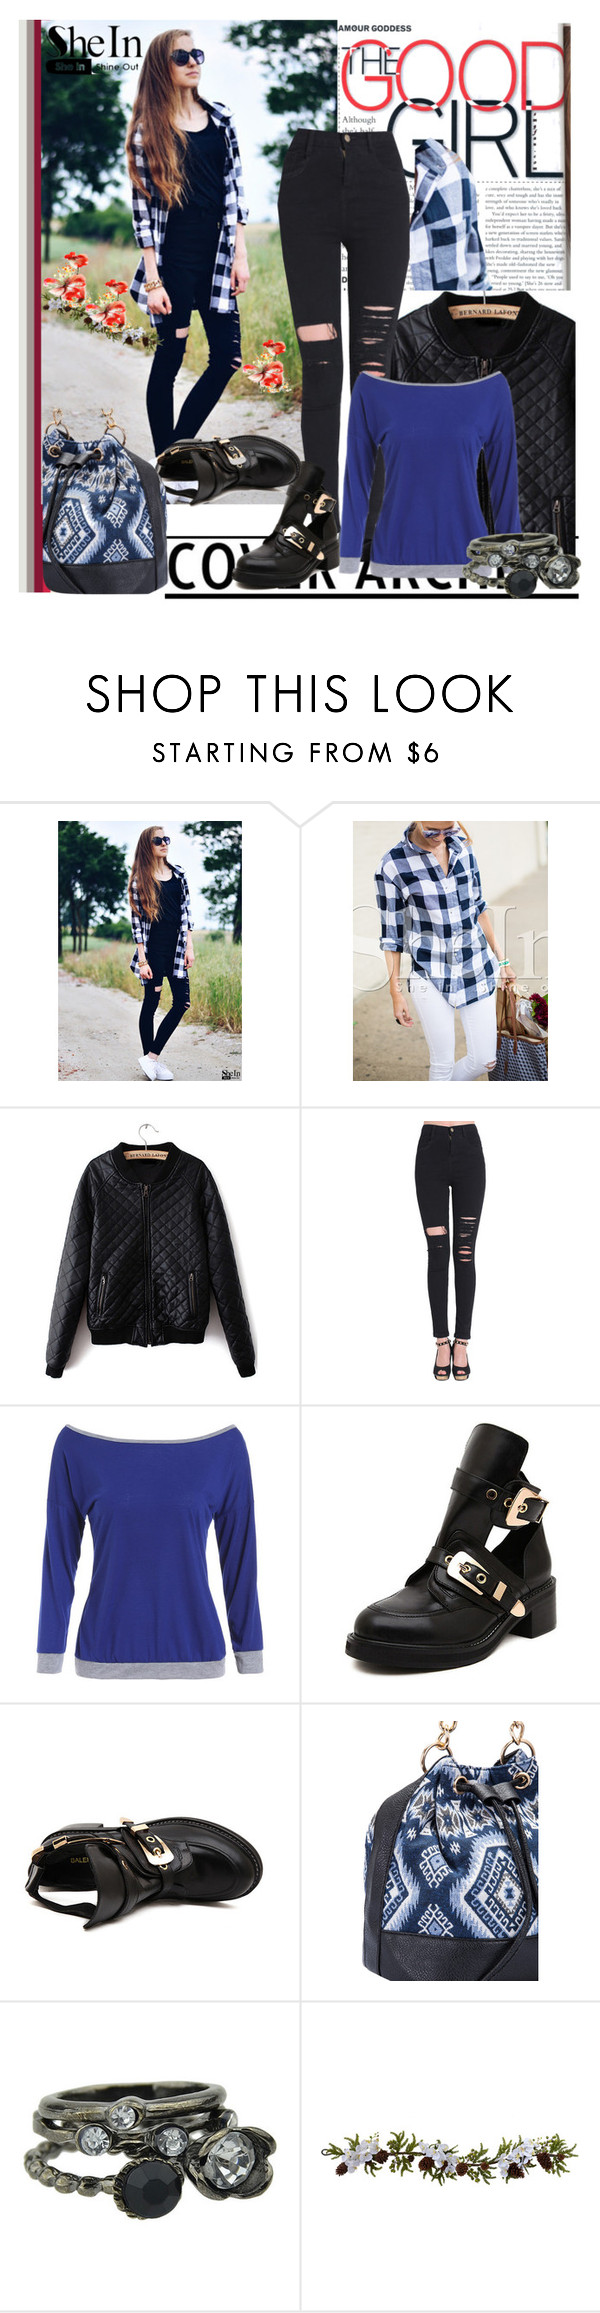 """""""Shein.com"""" by lip-balm ❤ liked on Polyvore featuring moda, Nearly Natural, vintage y shein"""